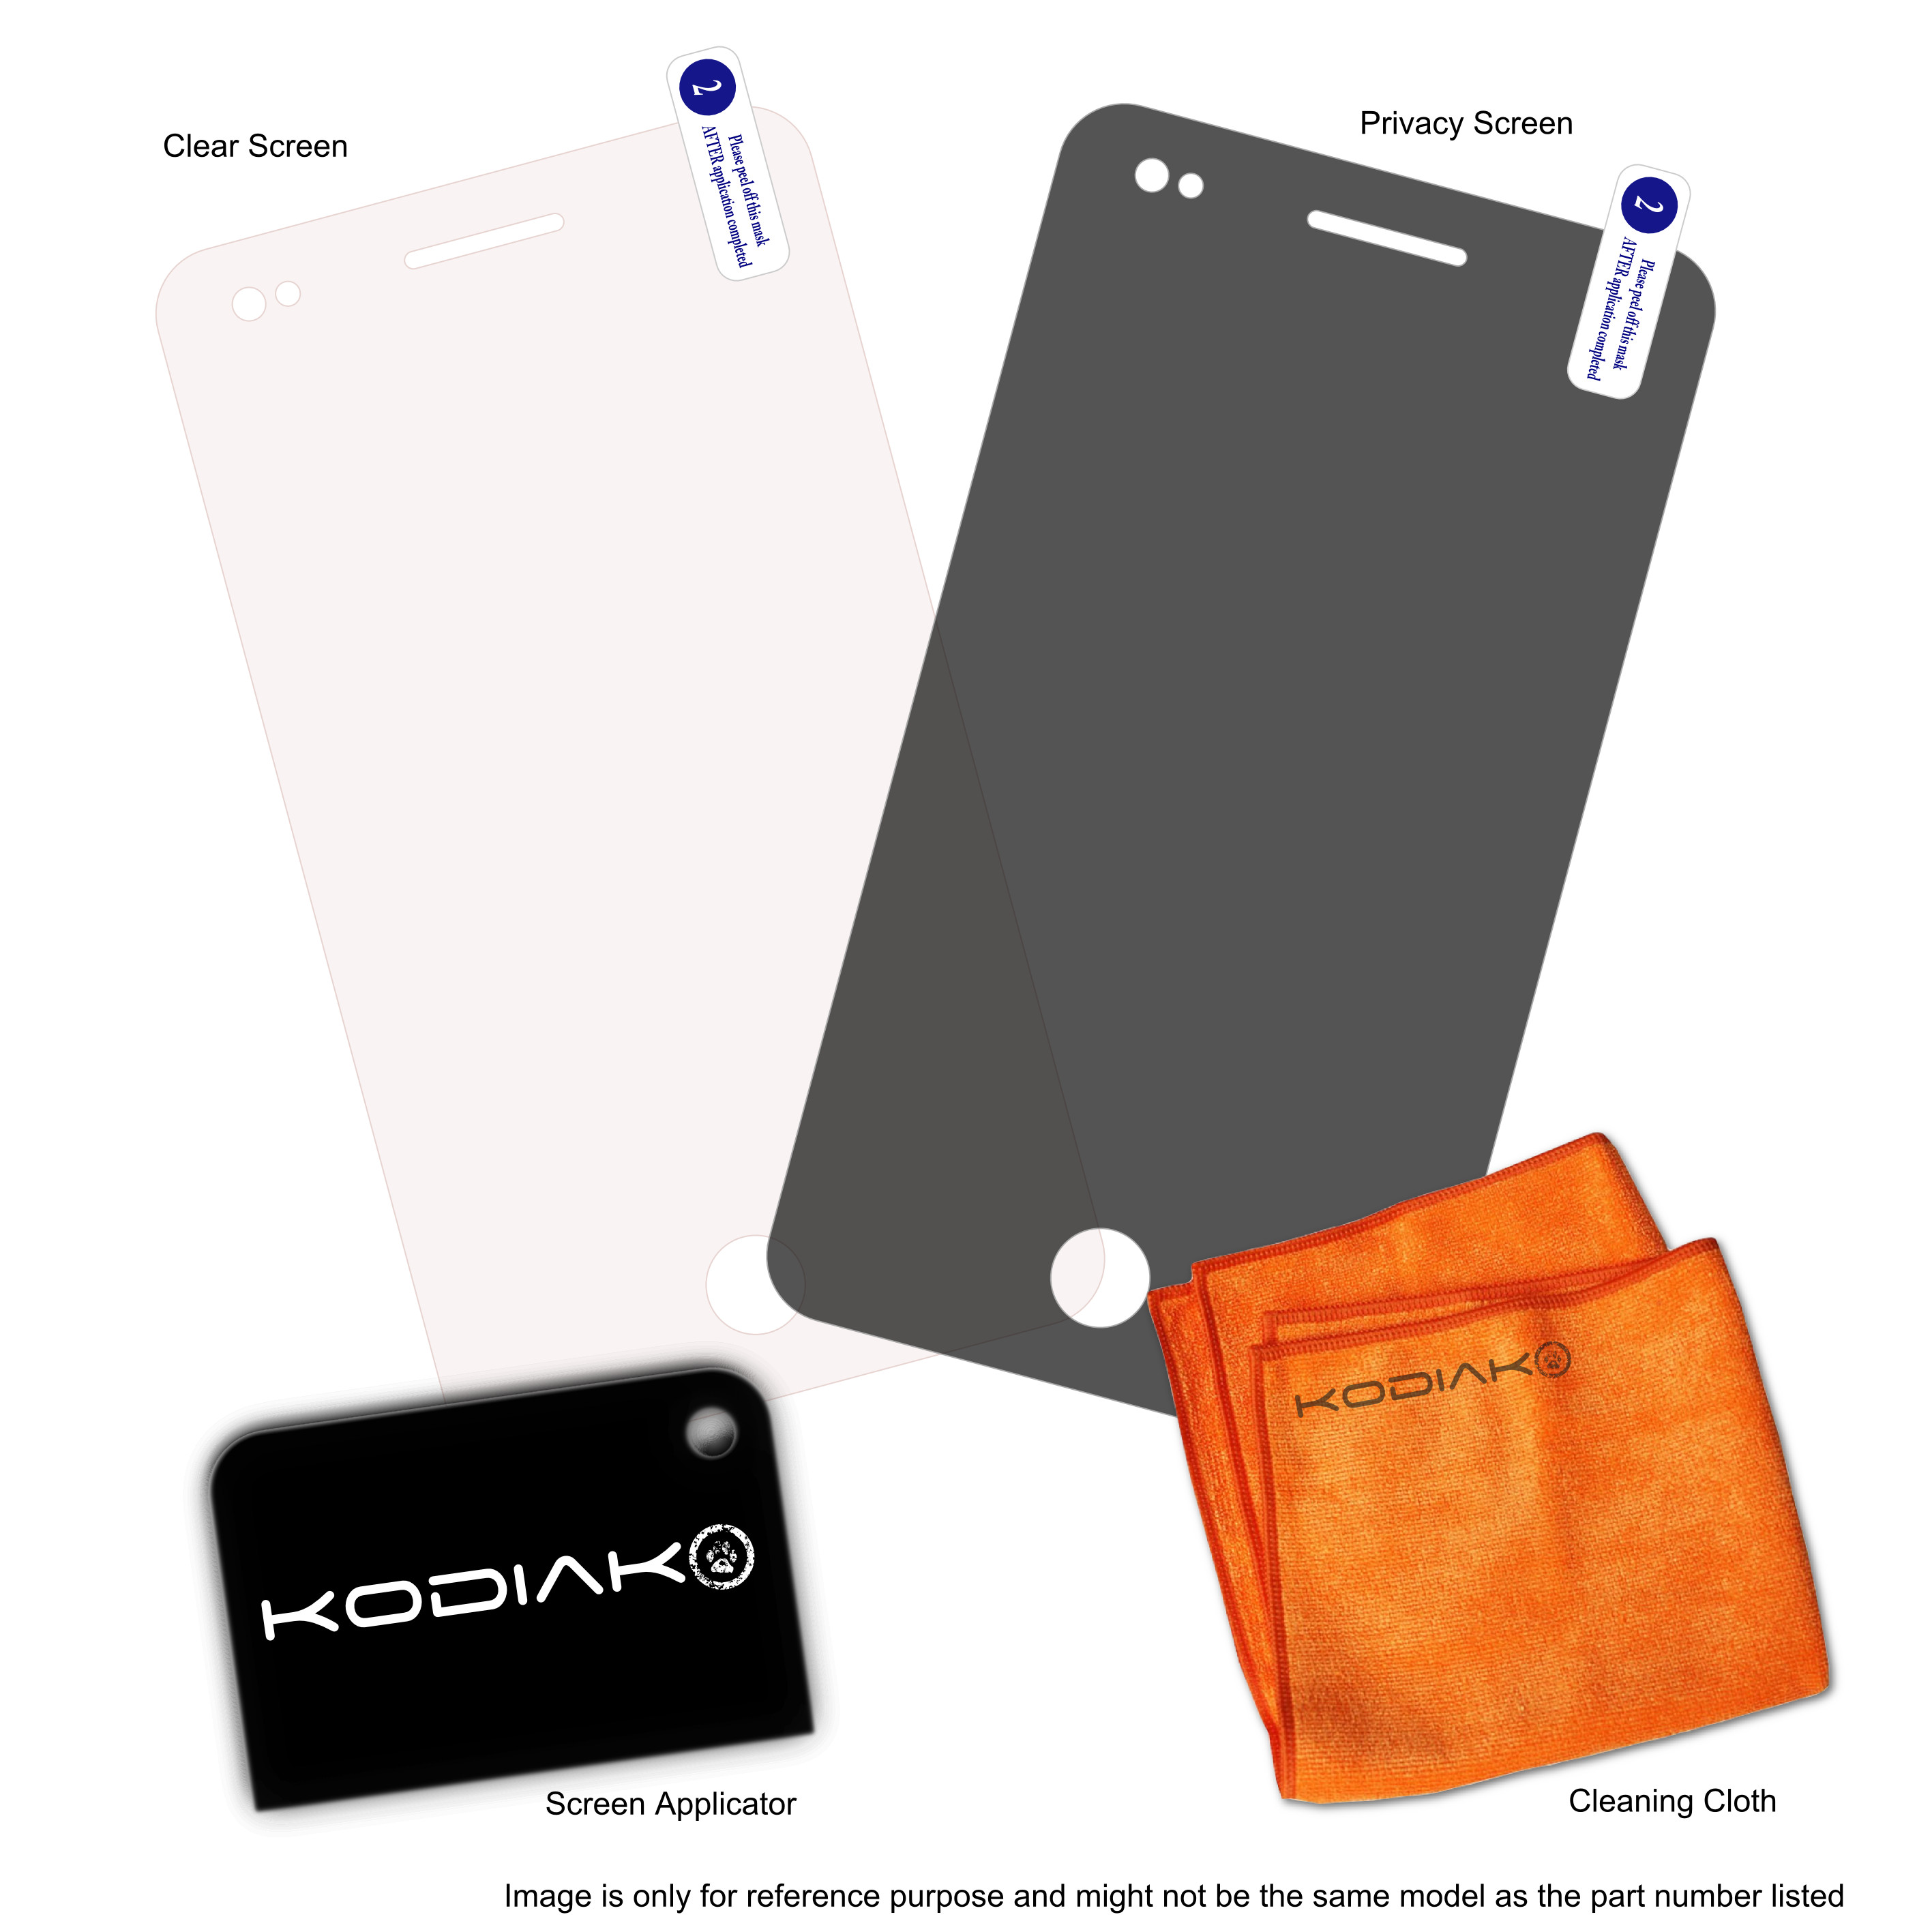 Original Kodiak Screen Protector Nokia Lumia 920 iProtect 2-Package (Clear + Privacy)